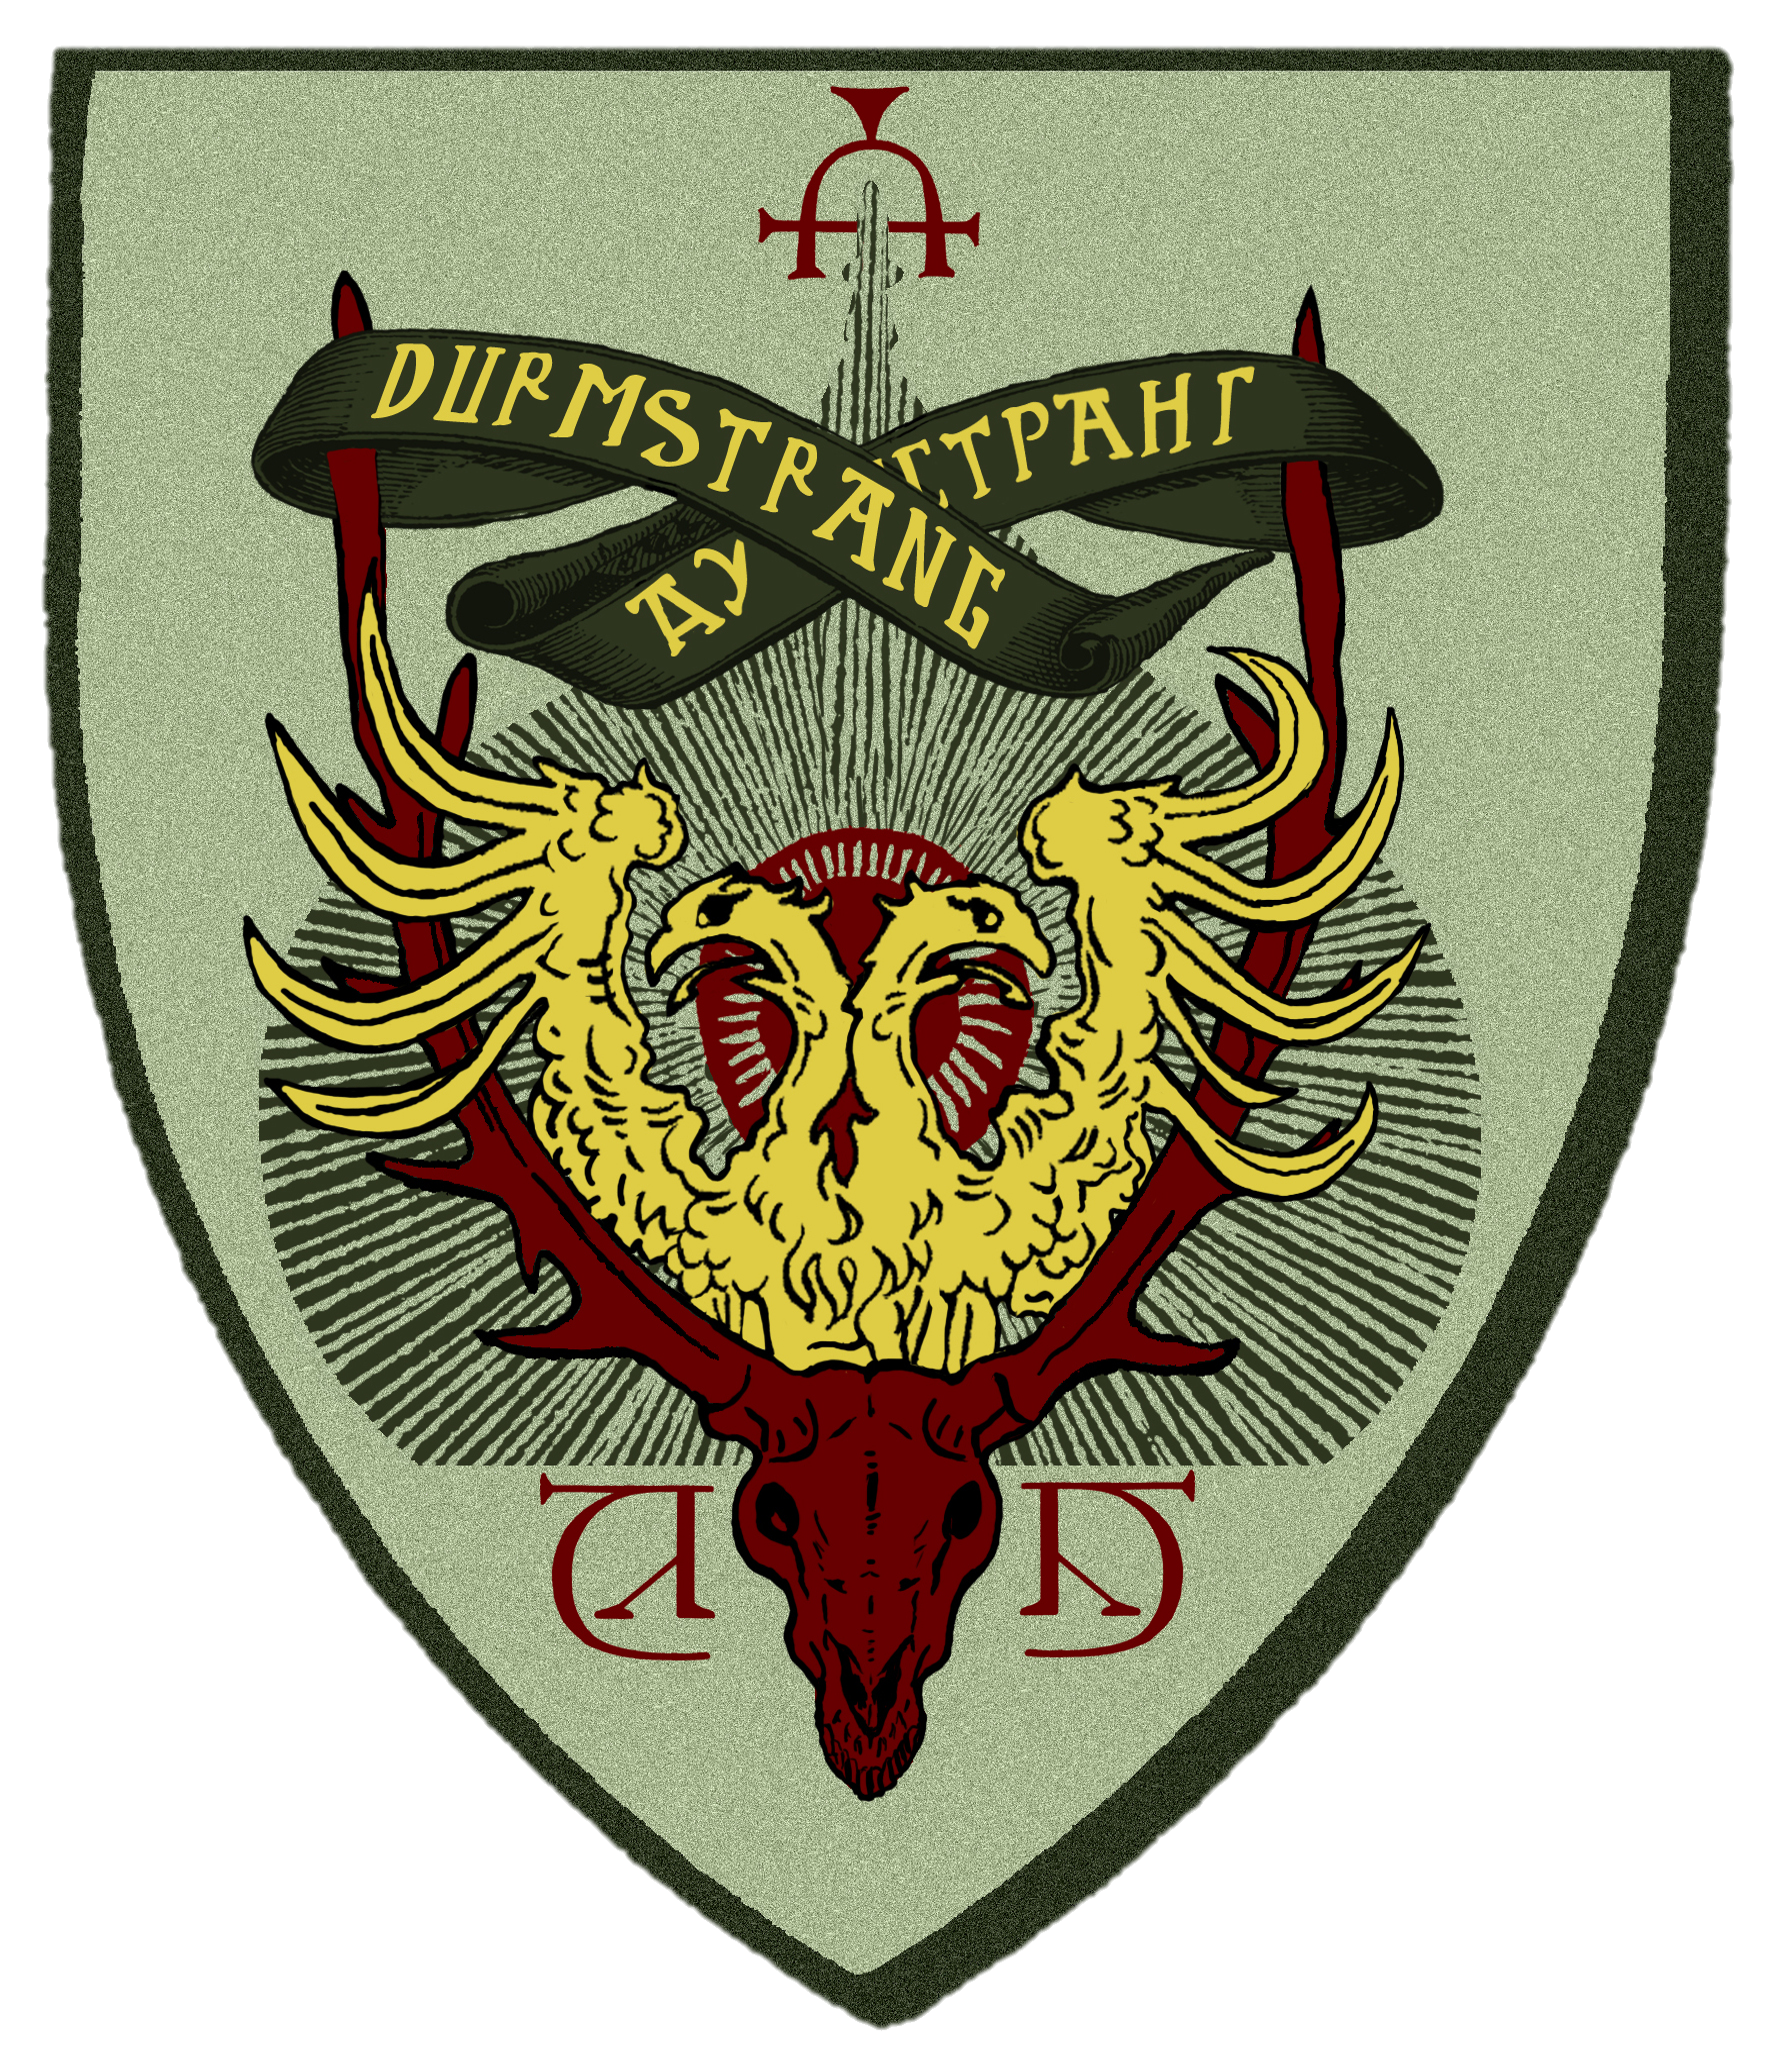 Durmstrang Institute Harry Potter Wiki Fandom This mysterious academy for young witches and wizards holds many secrets that fans. durmstrang institute harry potter